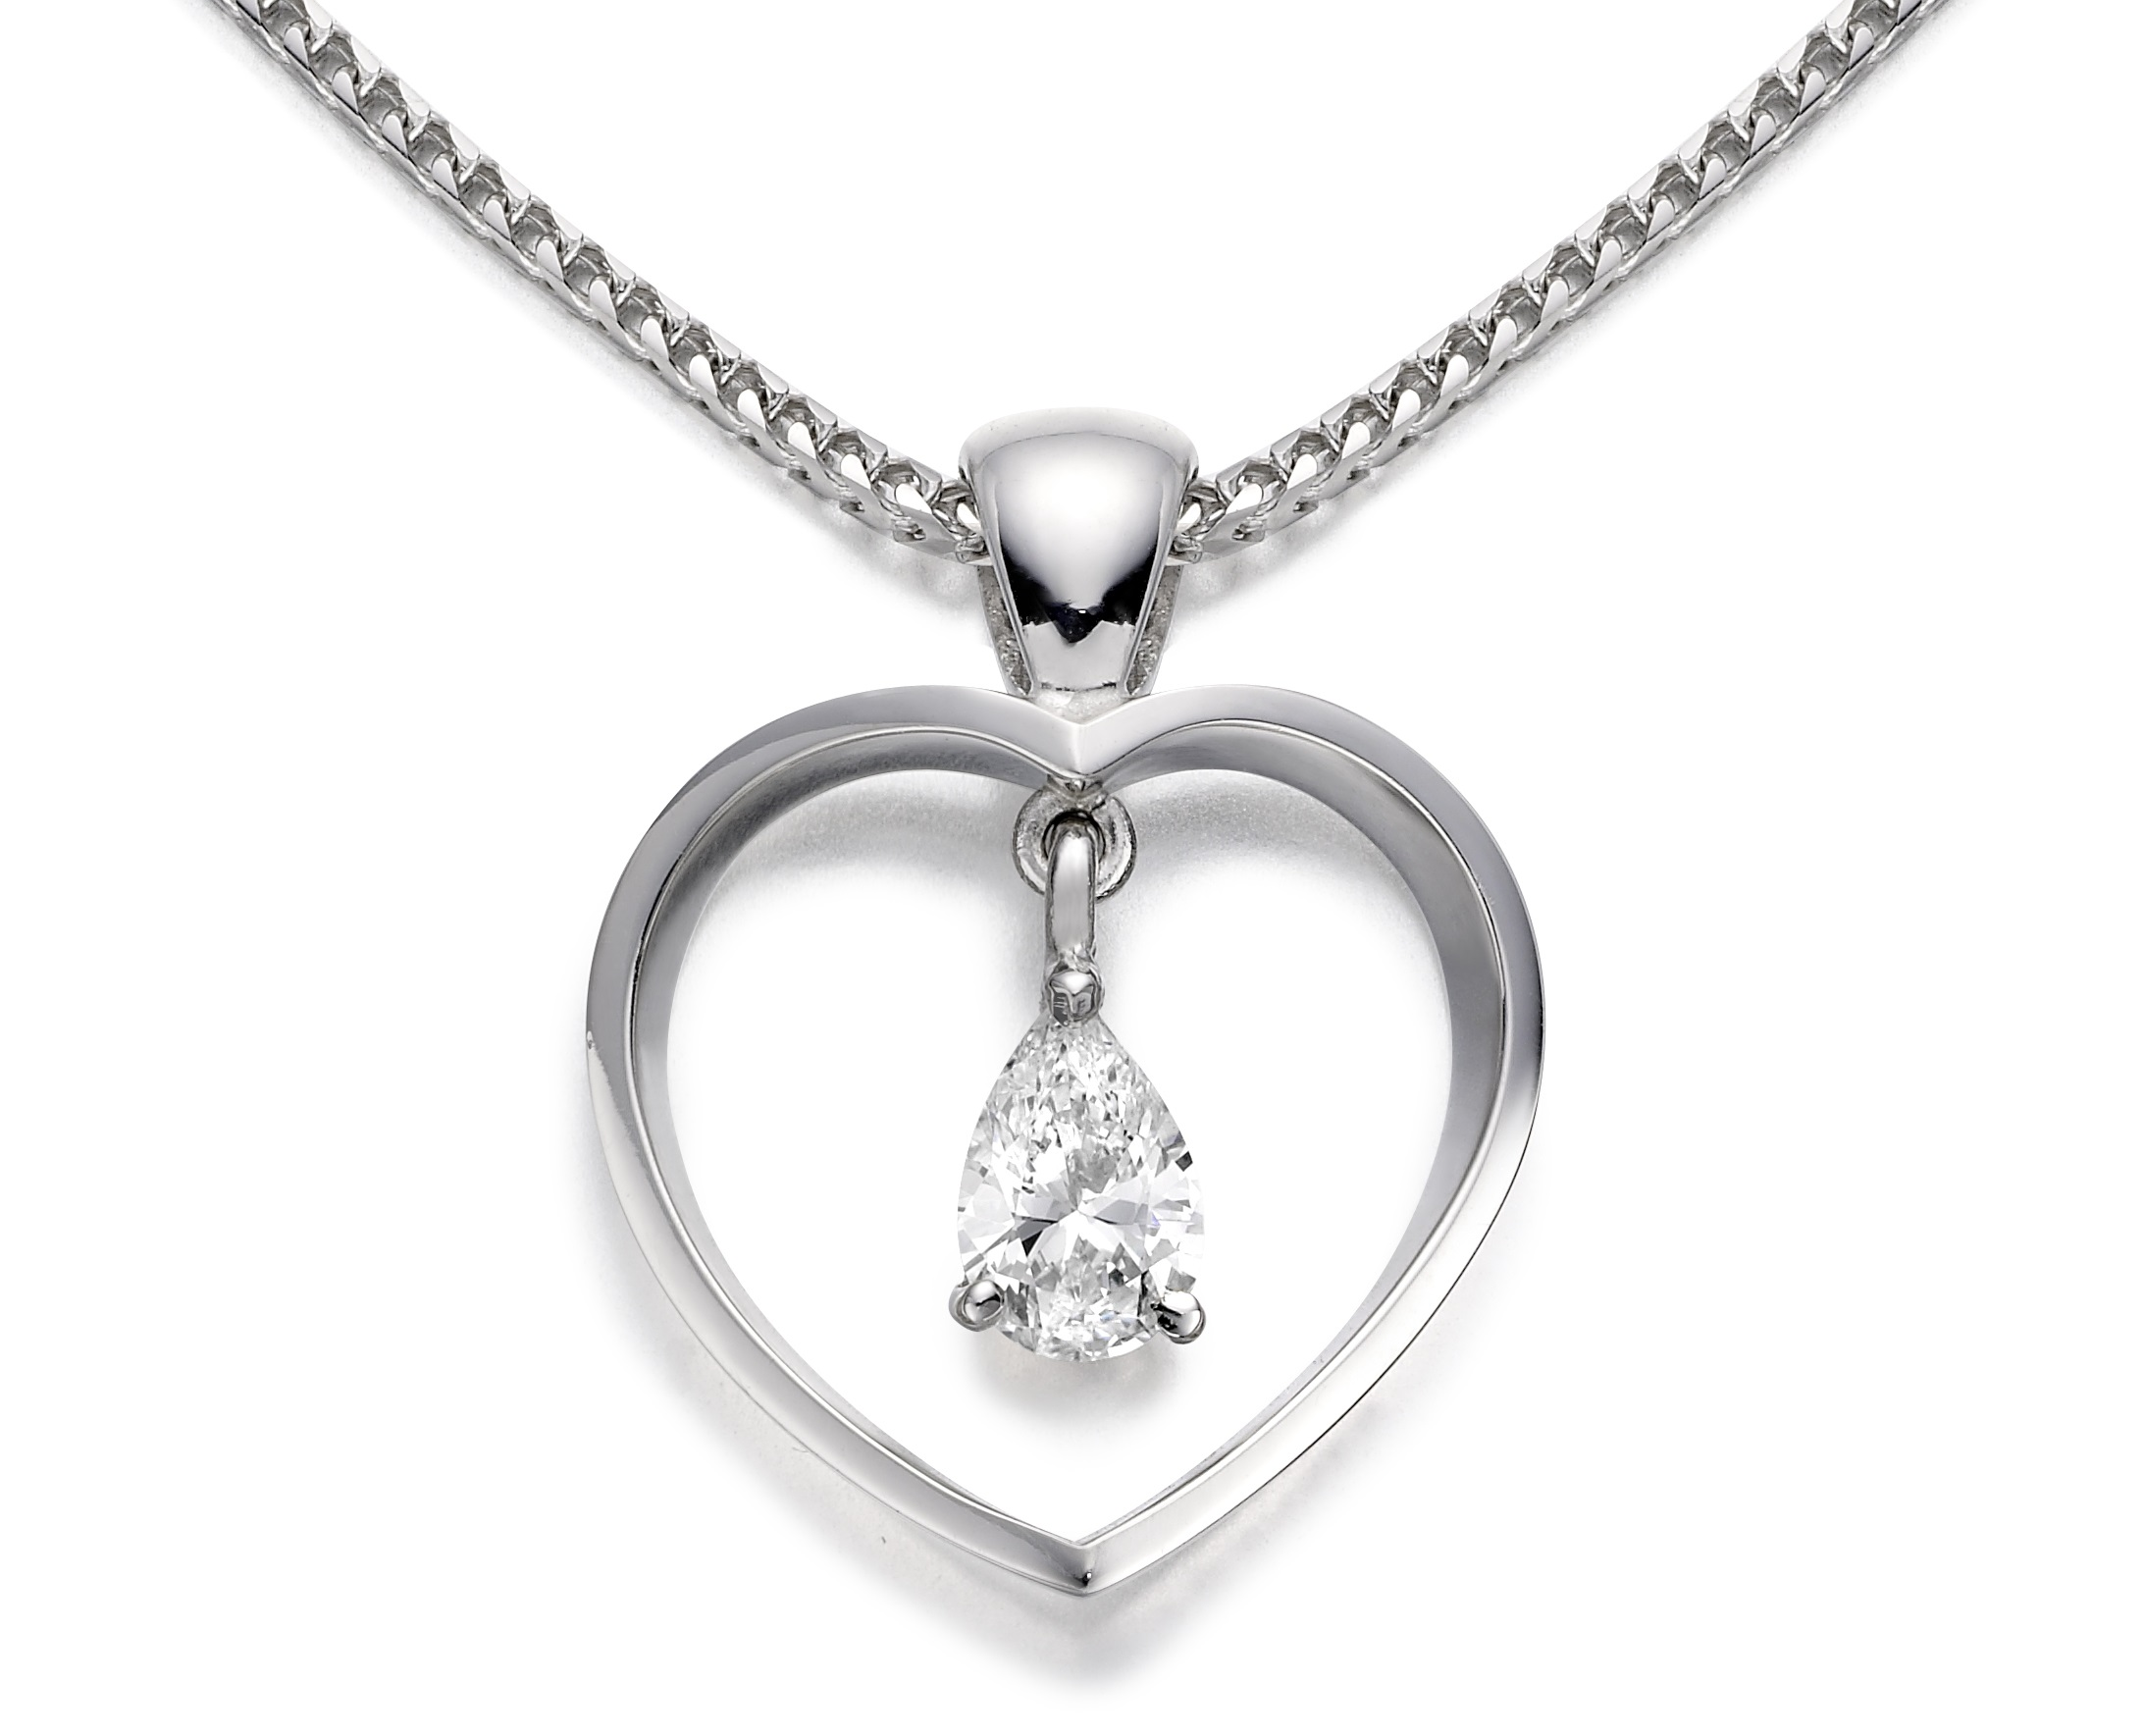 Heart-shape Diamond Pendant - 05-01-012